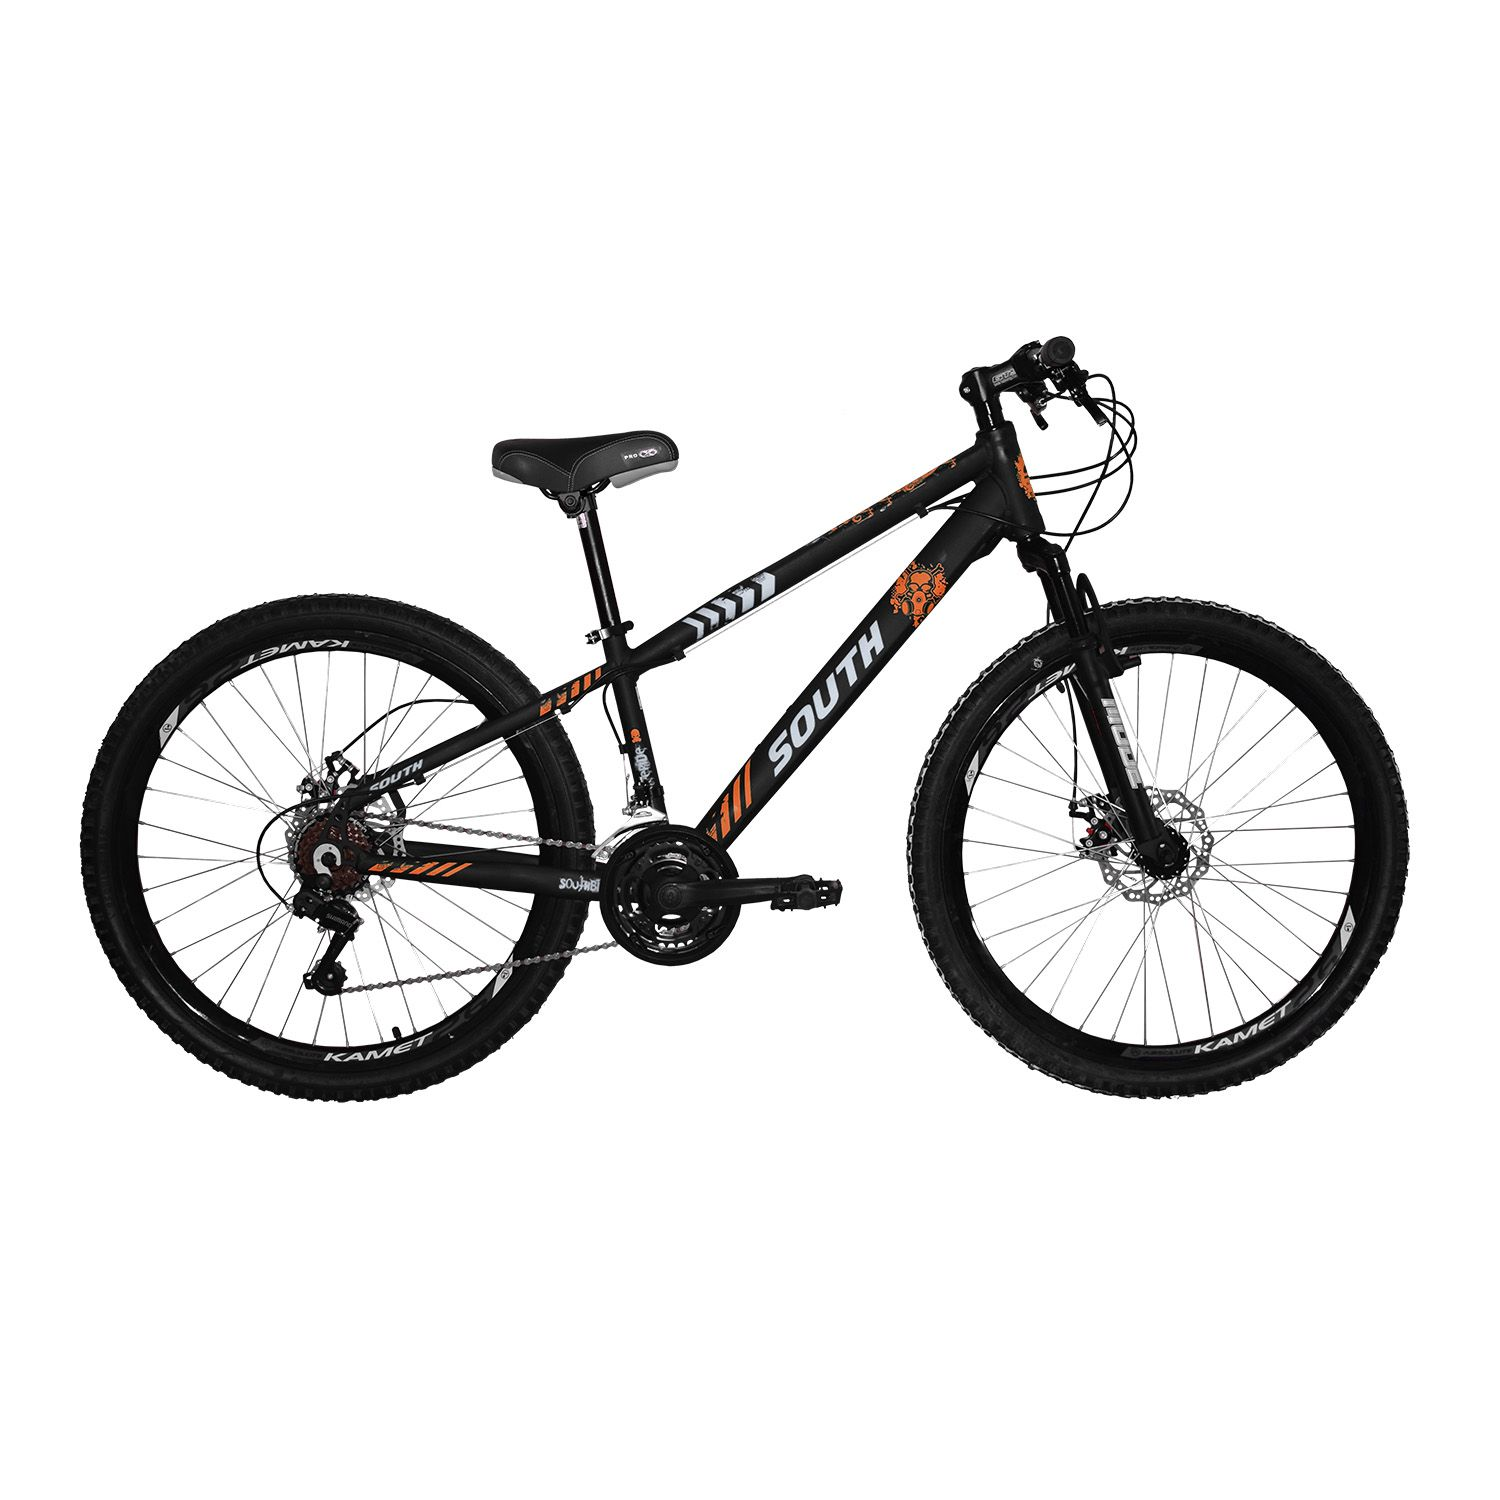 Bicicleta South Freeride 2019 aro 26